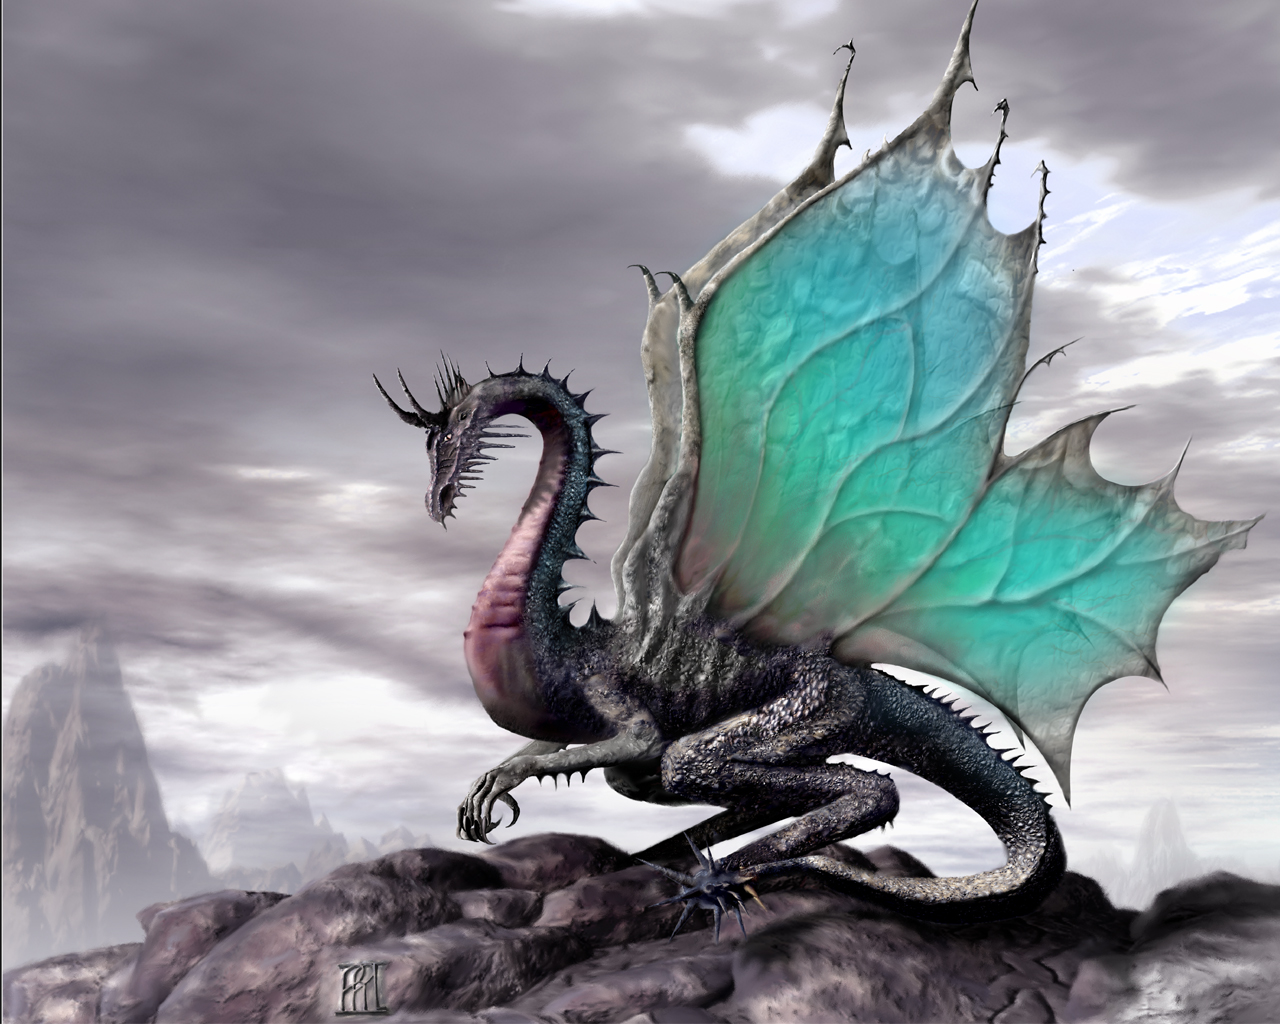 green-dragon-wallpapers,fantasy, epic, animal, myth, how-to-train-your-dragon-3d-movie-review-blog-trailer,Dragon HD Wallpaper